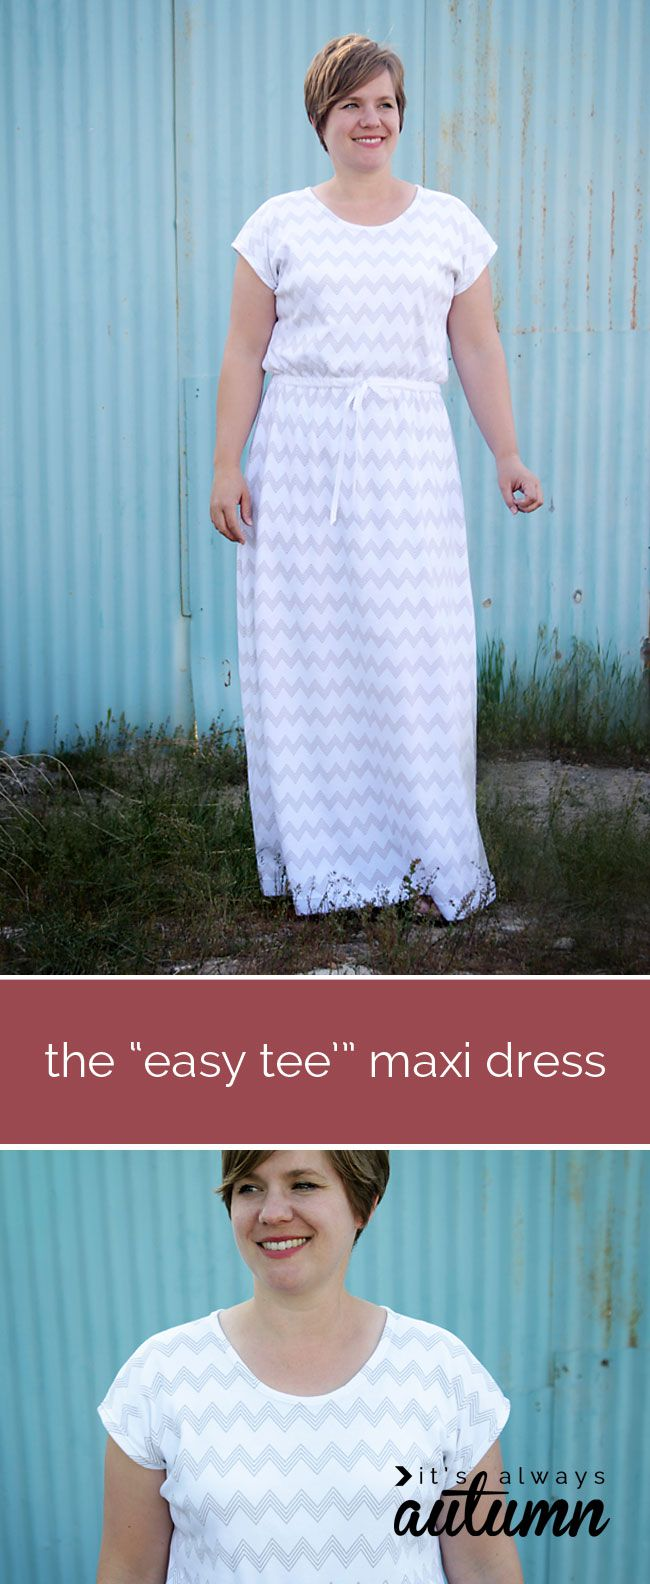 how to sew a maxi dress | einfache Muster, Nähen und Muster